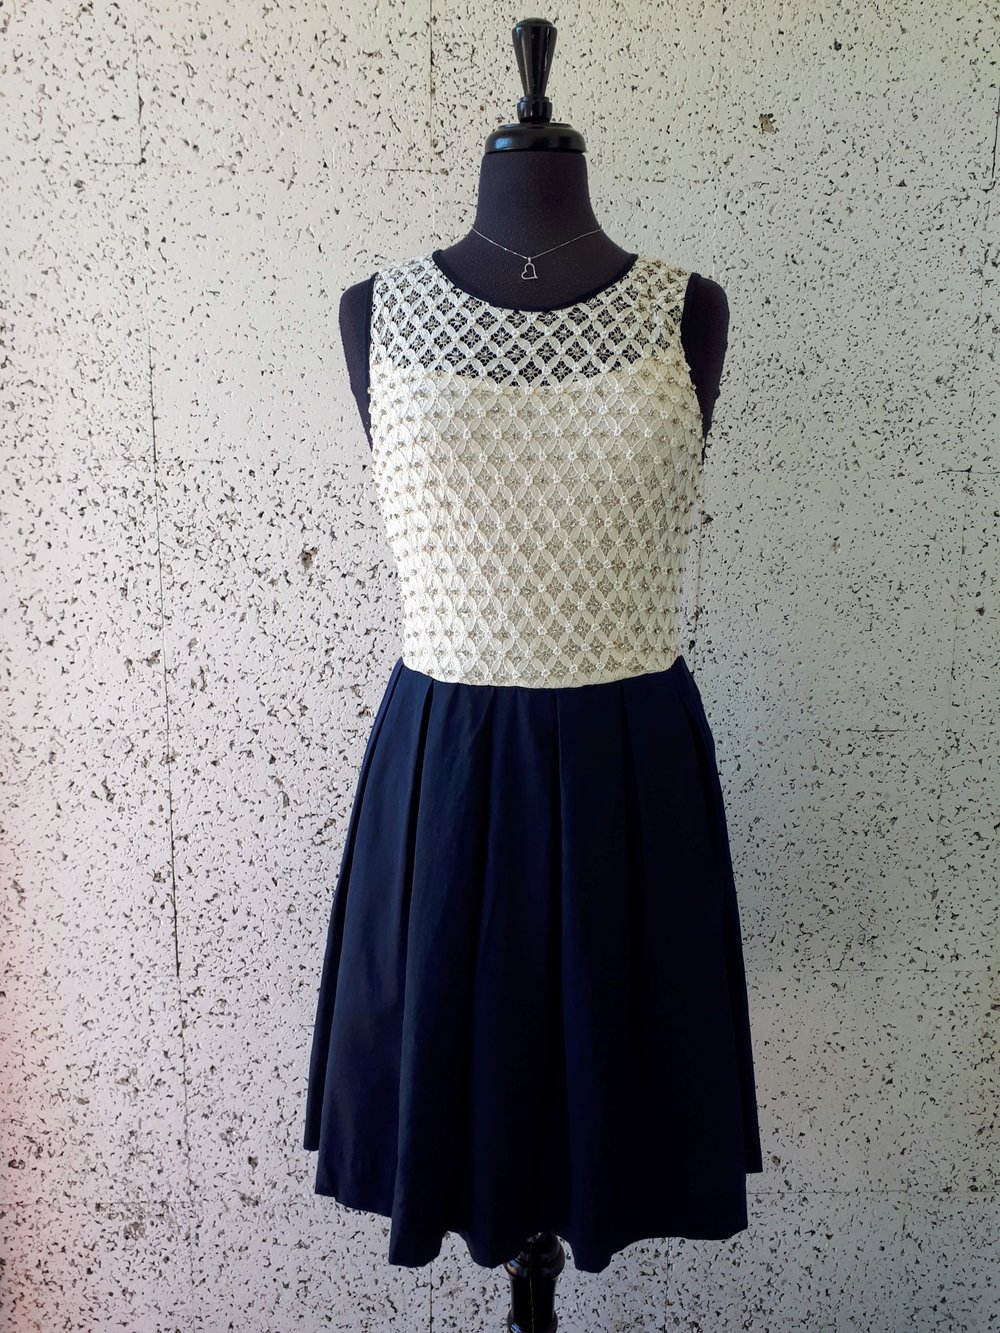 Beaded dress; Size M, $38